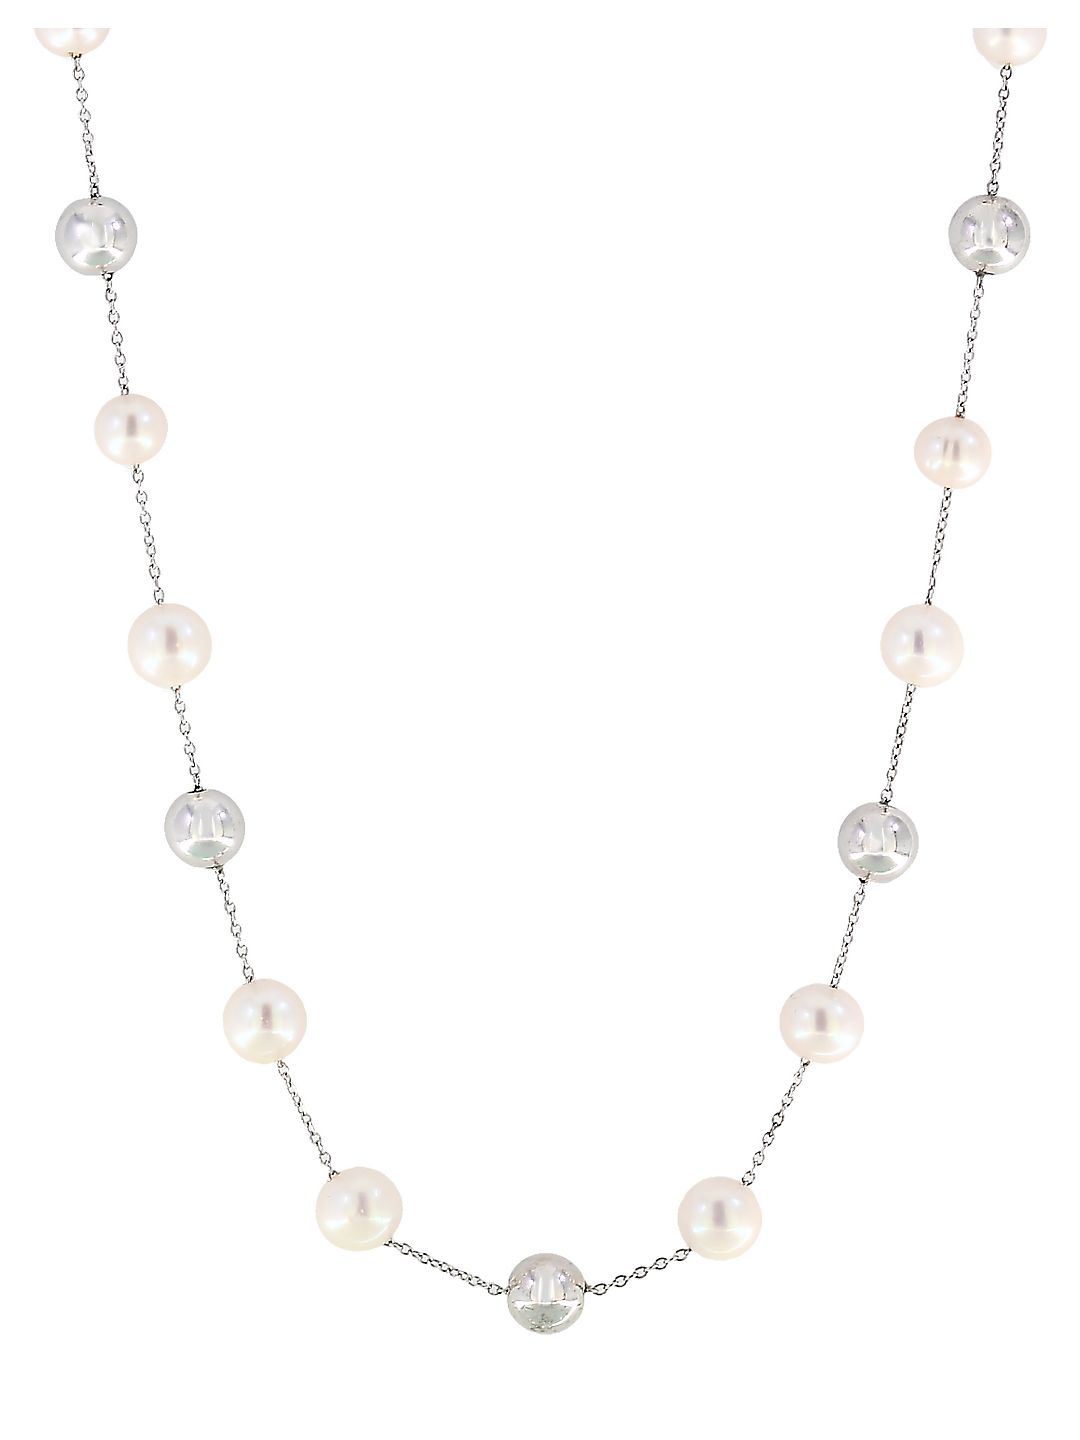 5MM, 6.5MM and 8MM Freshwater Pearl and Sterling Silver Station Necklace